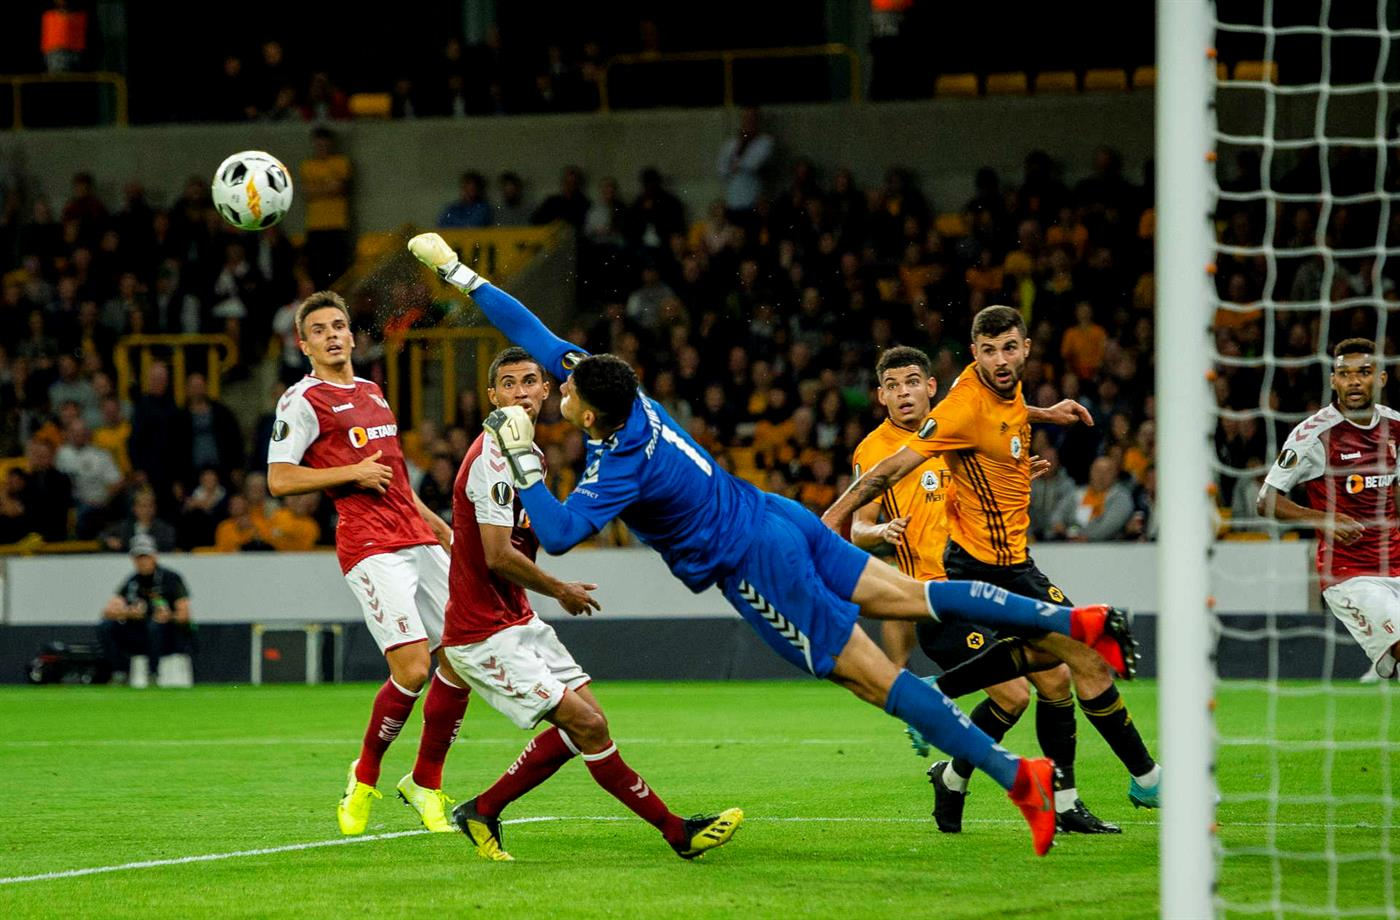 epa07854436 Braga's Matheus Magalhaes in action during the UEFA Europa League group K soccer match between